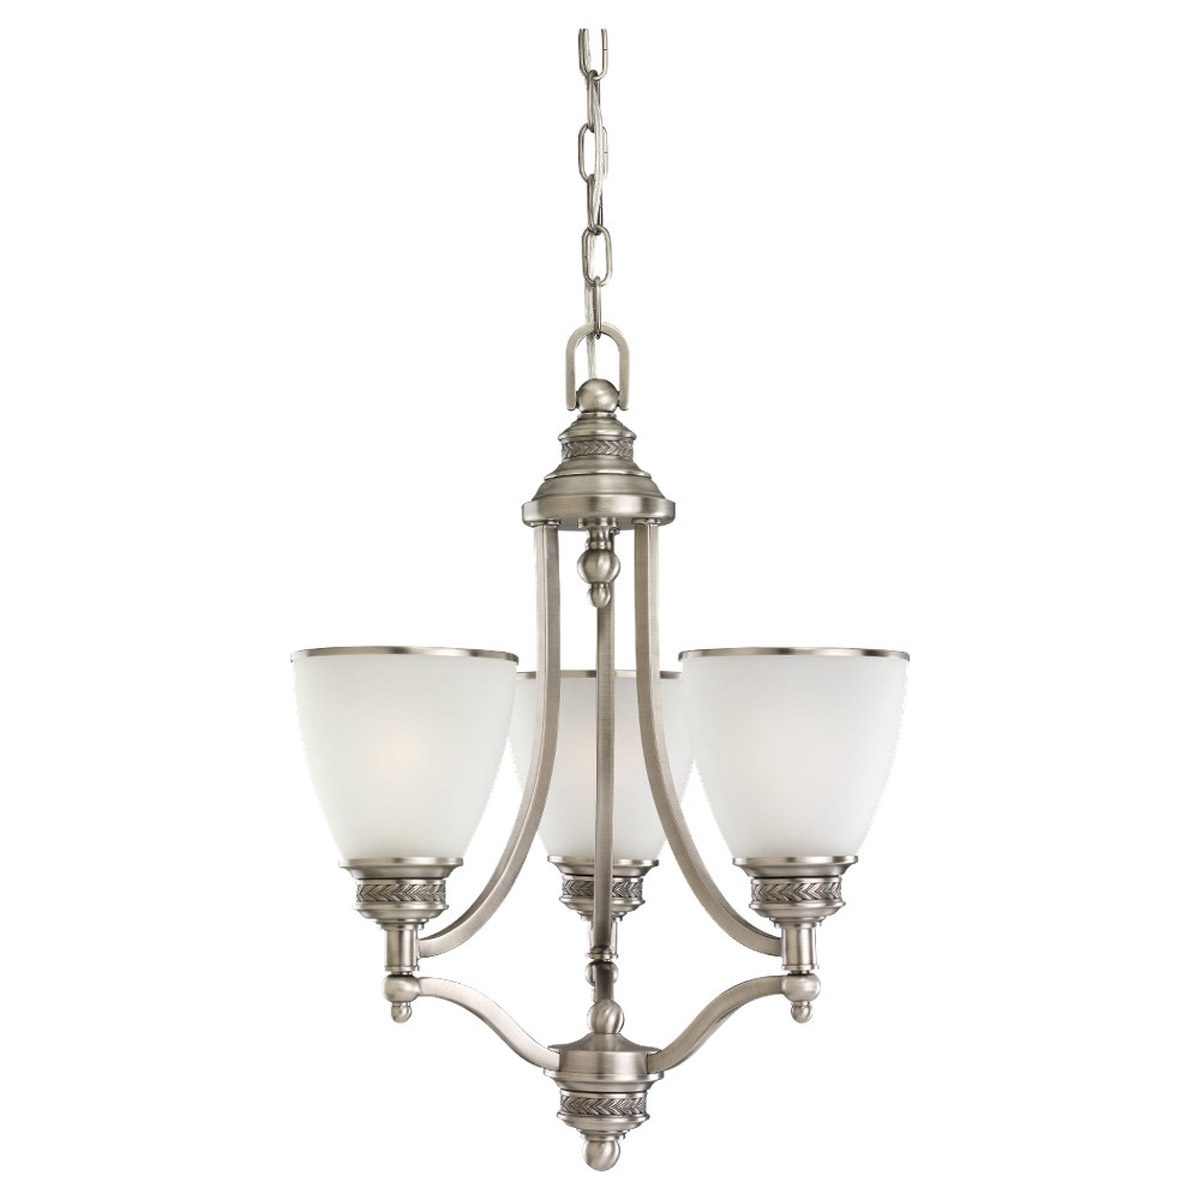 Sea Gull 31349-965 Laurel Leaf 3 Light 18 inch Antique Brushed Nickel Chandelier Ceiling Light photo